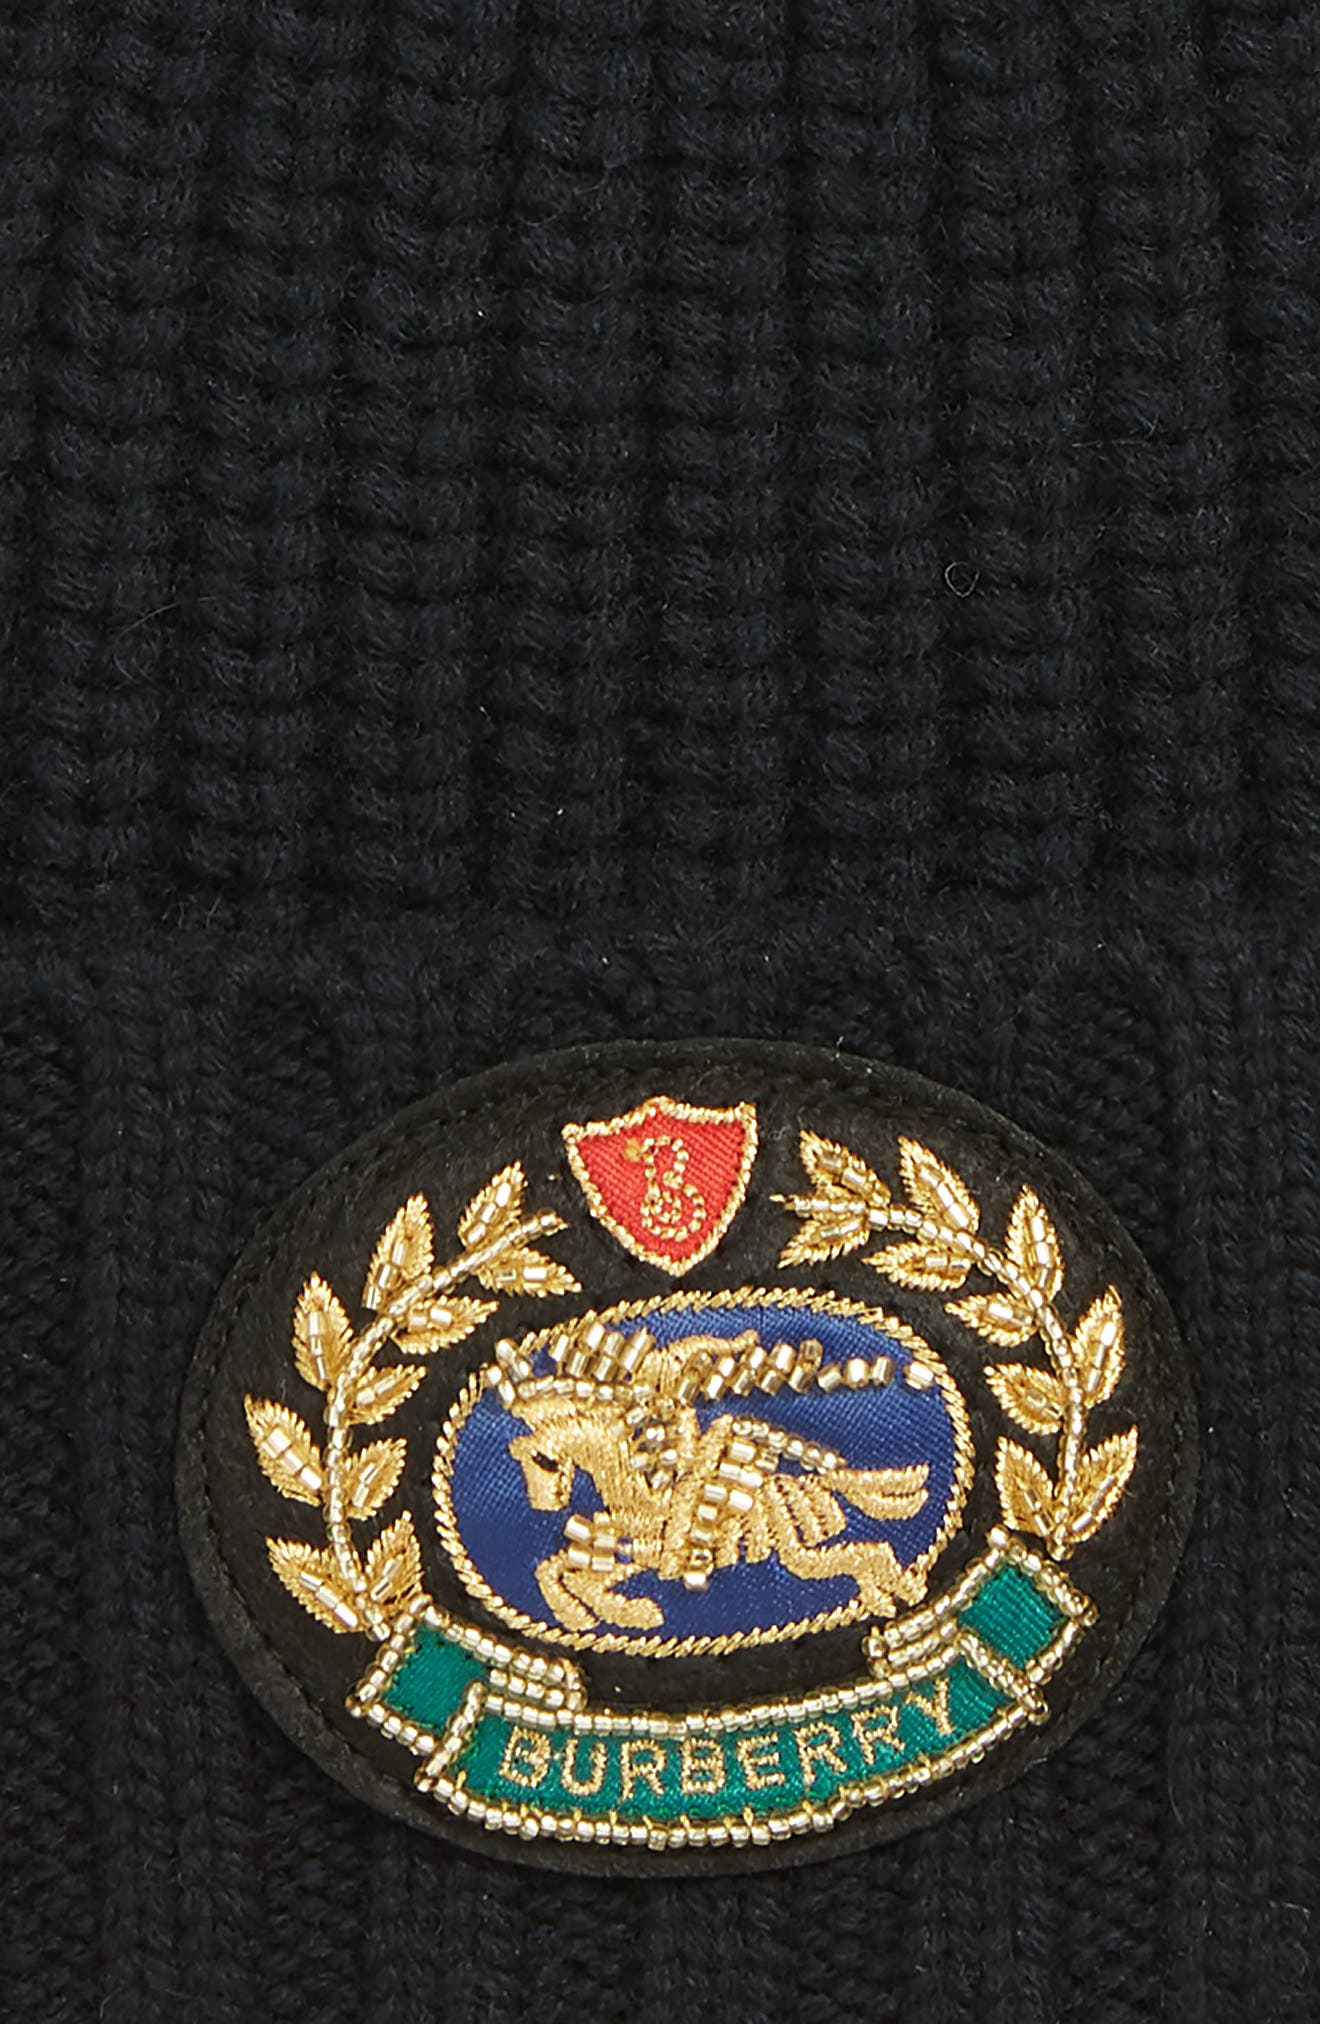 BURBERRY, Embroidered Crest Wool & Cashmere Beanie, Alternate thumbnail 2, color, BLACK